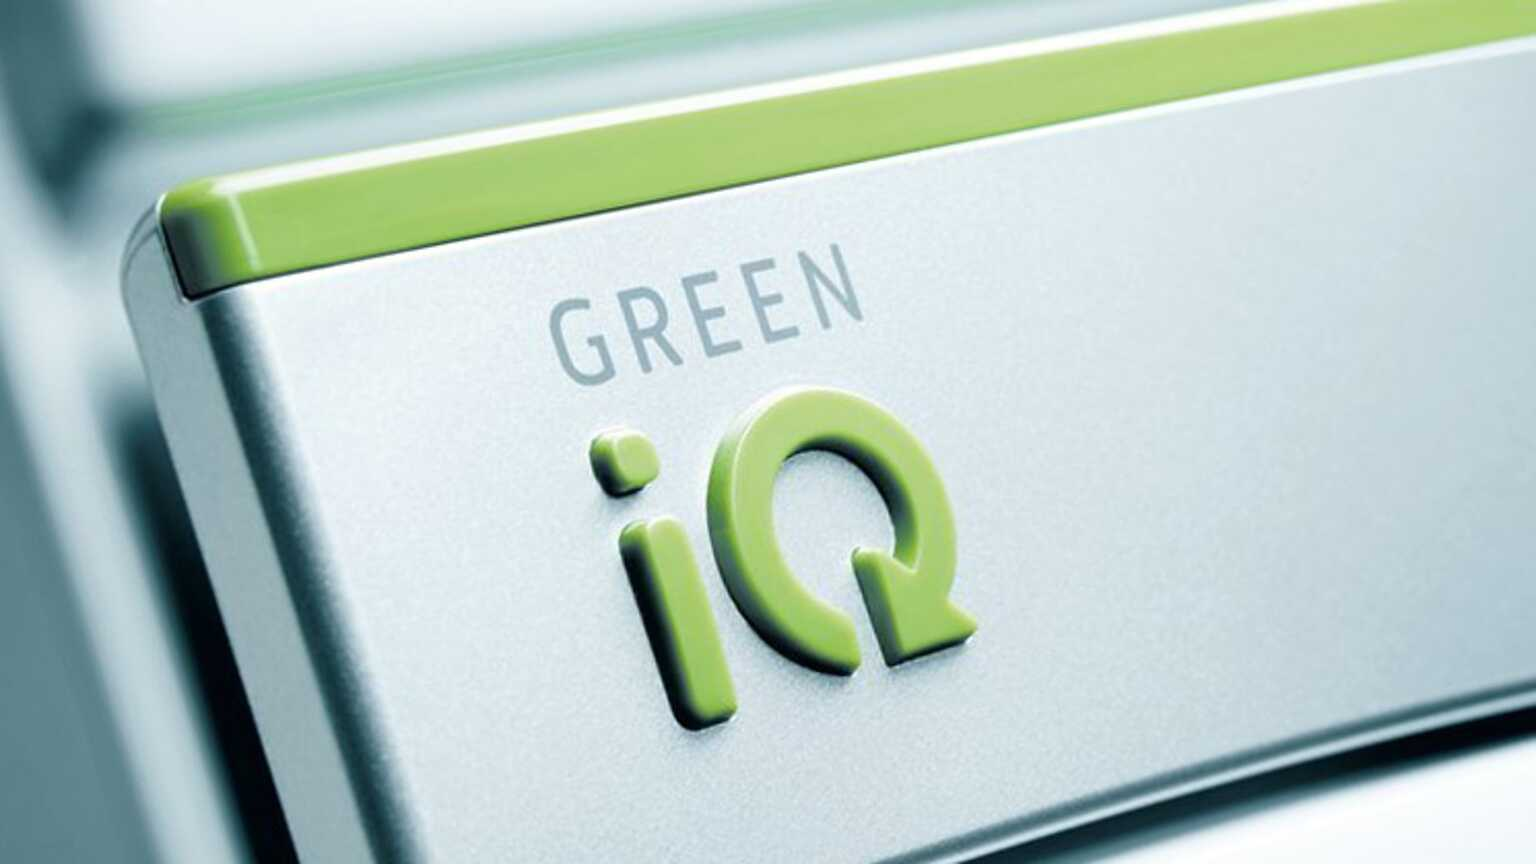 Green iQ – the label for sustainable and network technology